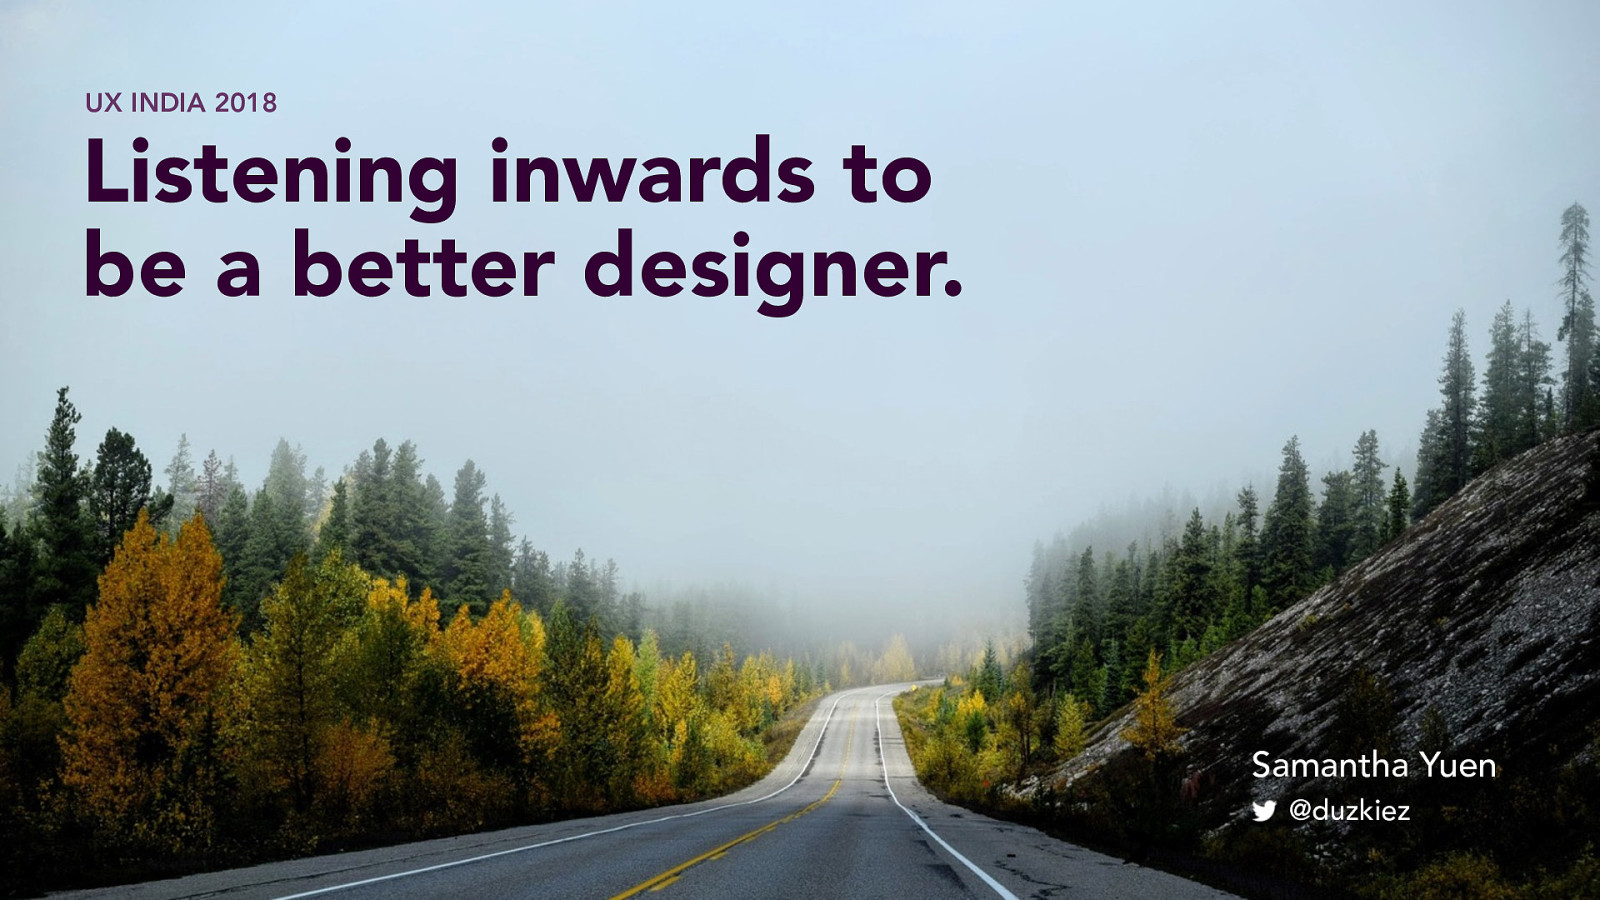 Listening inwards to be a better designer